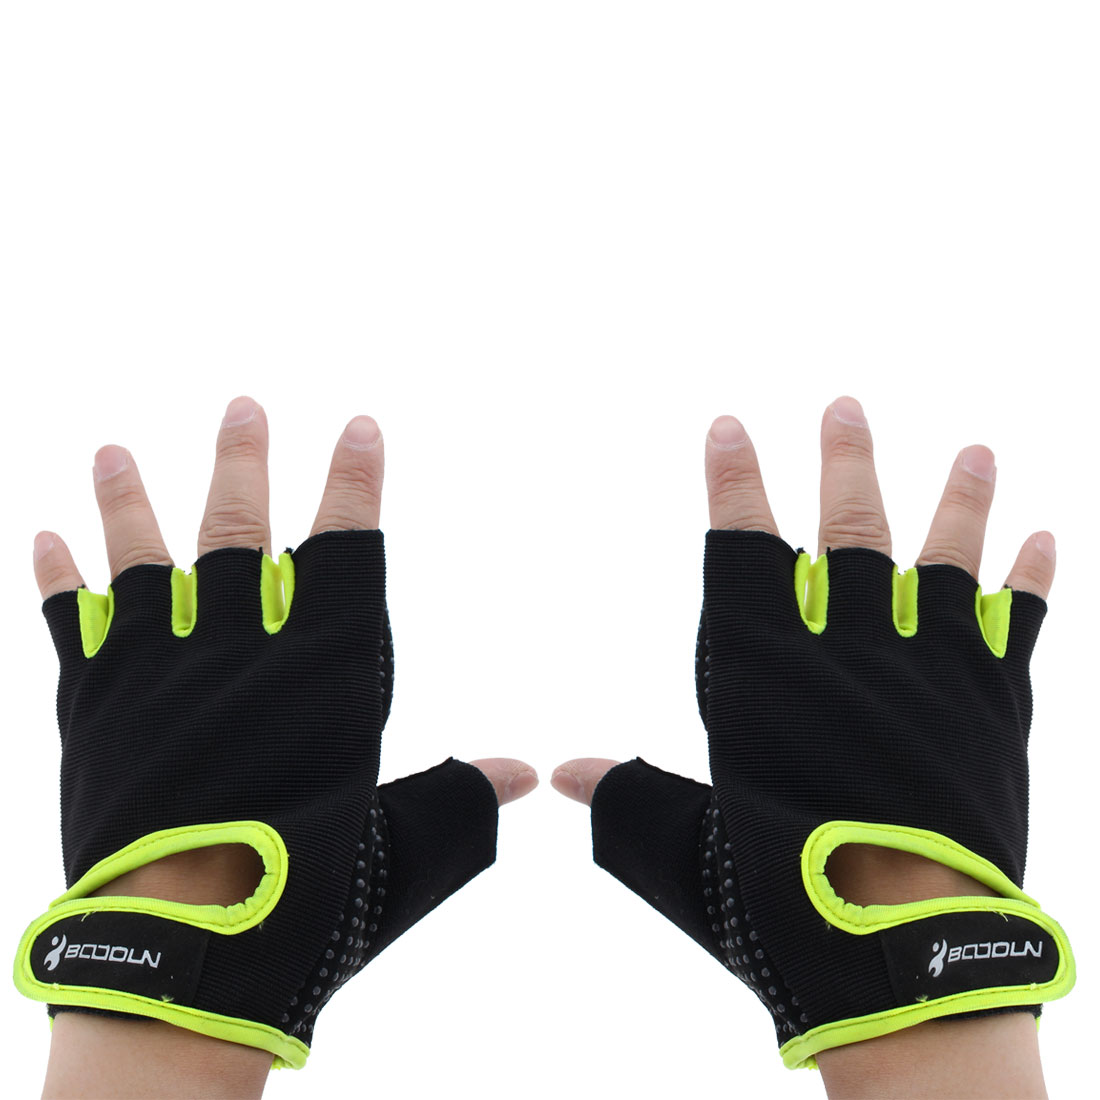 BOODUN Authorized Exercise Weight Biking Lifting Training Microfiber Non-slip Fitness Half Finger Gloves Fluorescent Green M